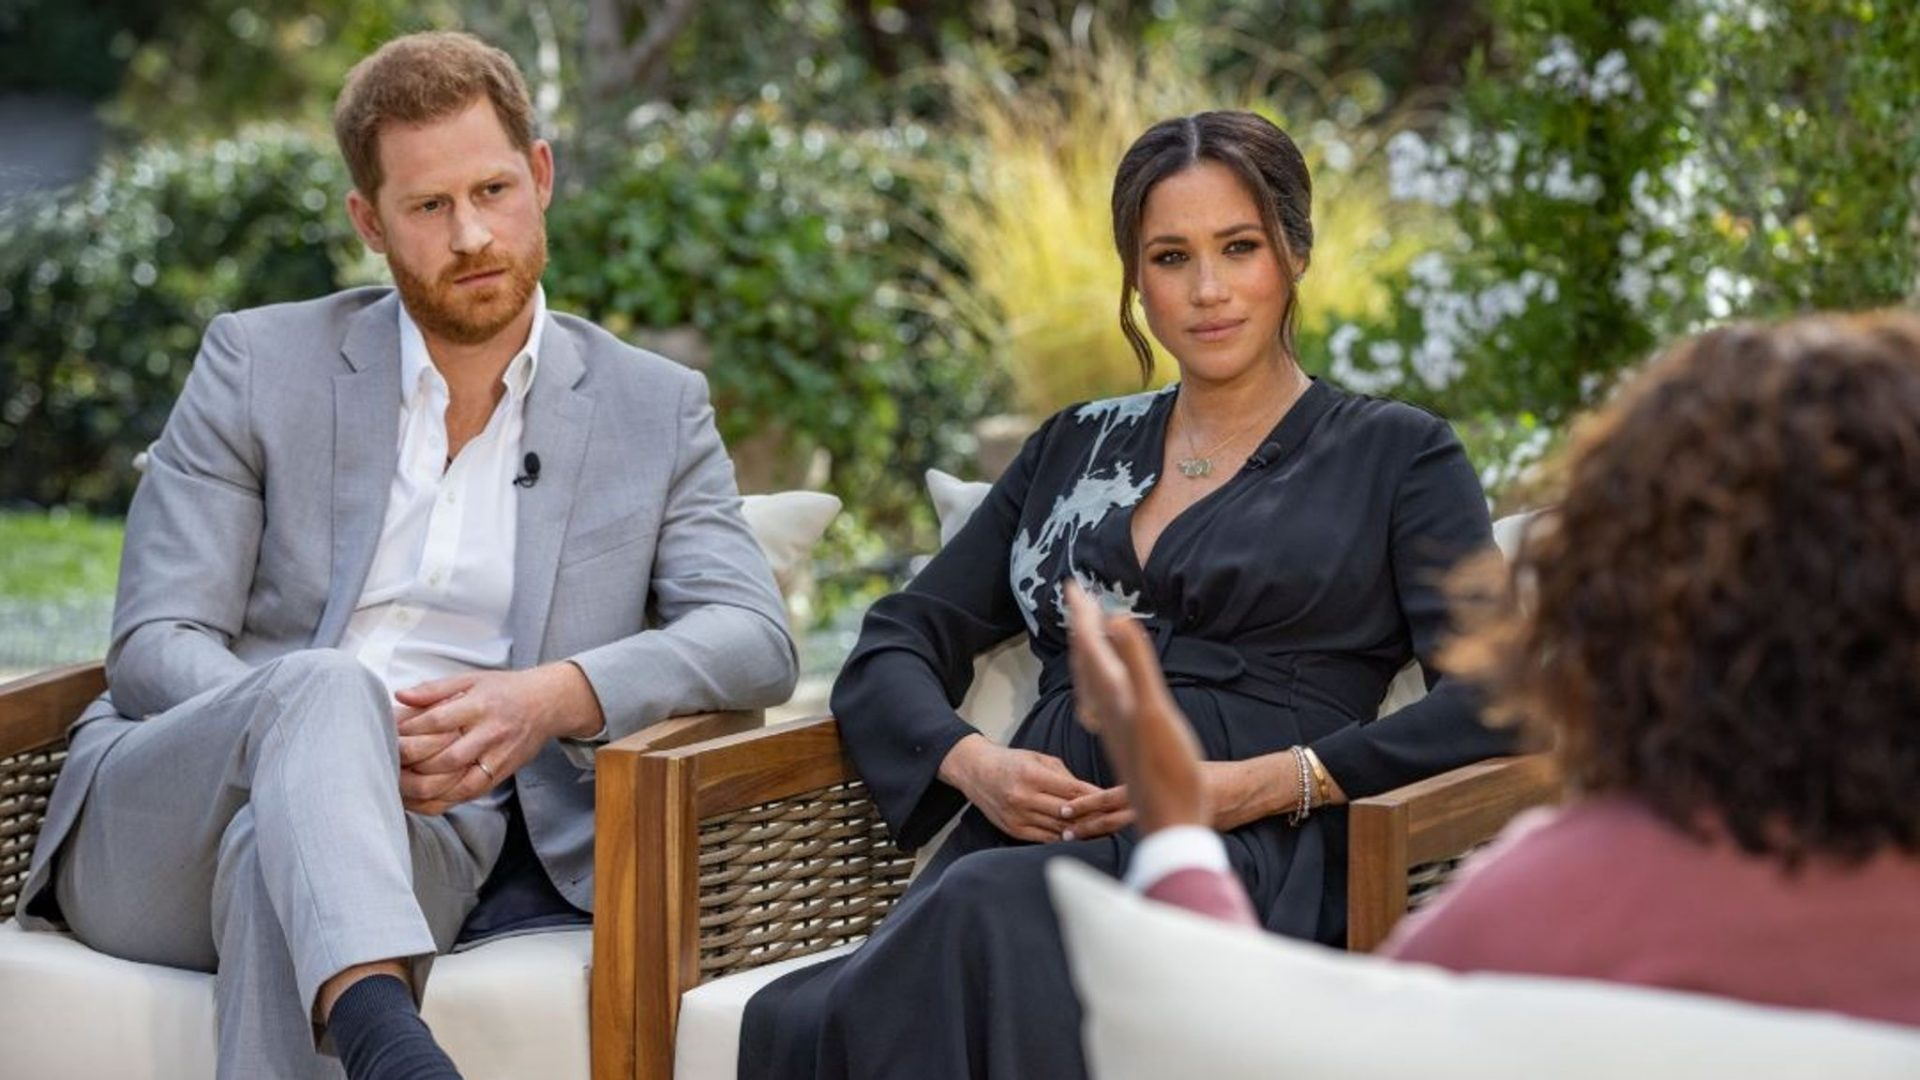 The 5 biggest bombshells from the Harry and Meghan Oprah interview